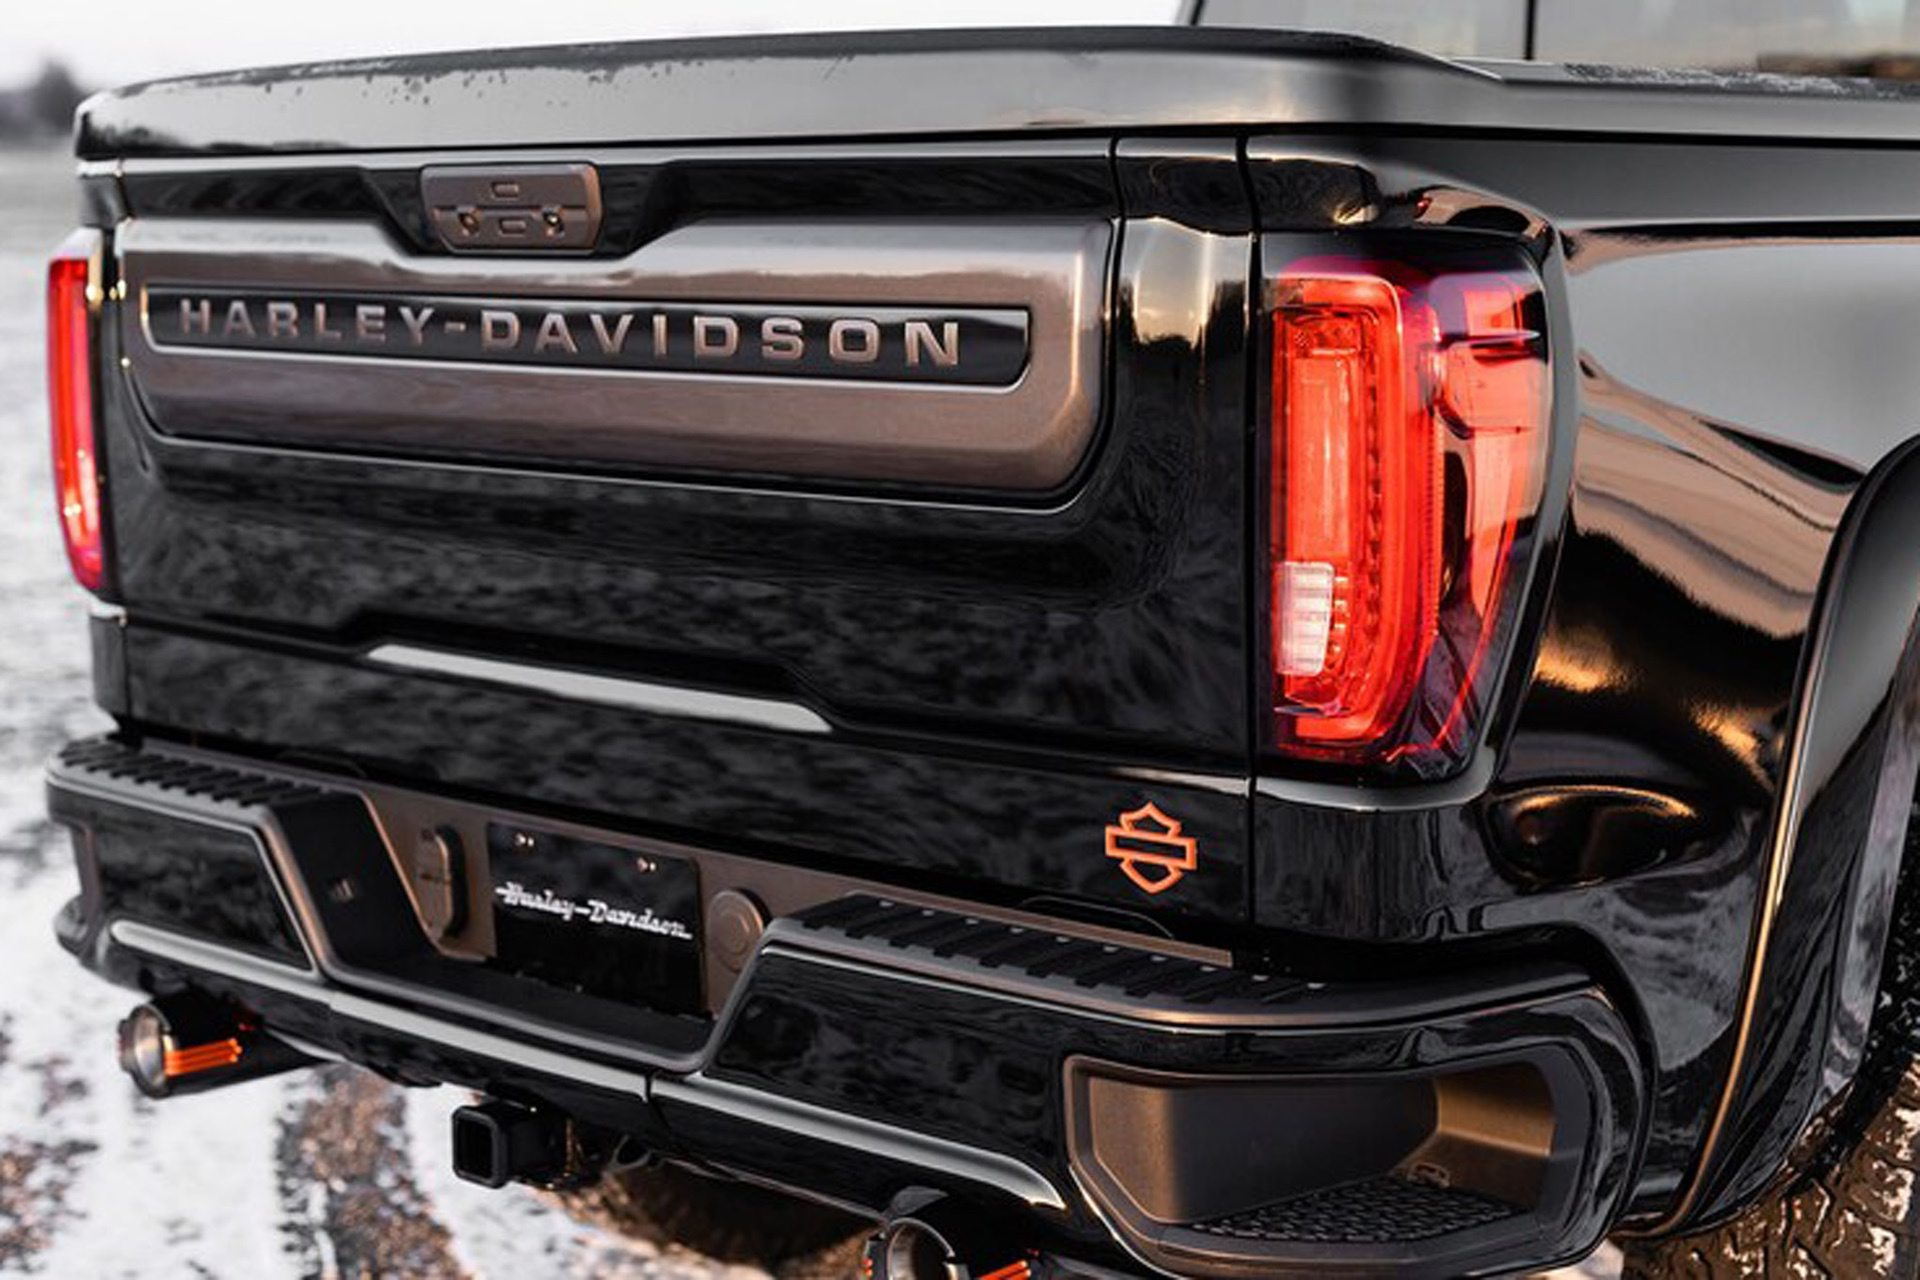 2020-GMC-Sierra-1500-Harley-Davidson-Edition-Tuscany-Automotive_0005